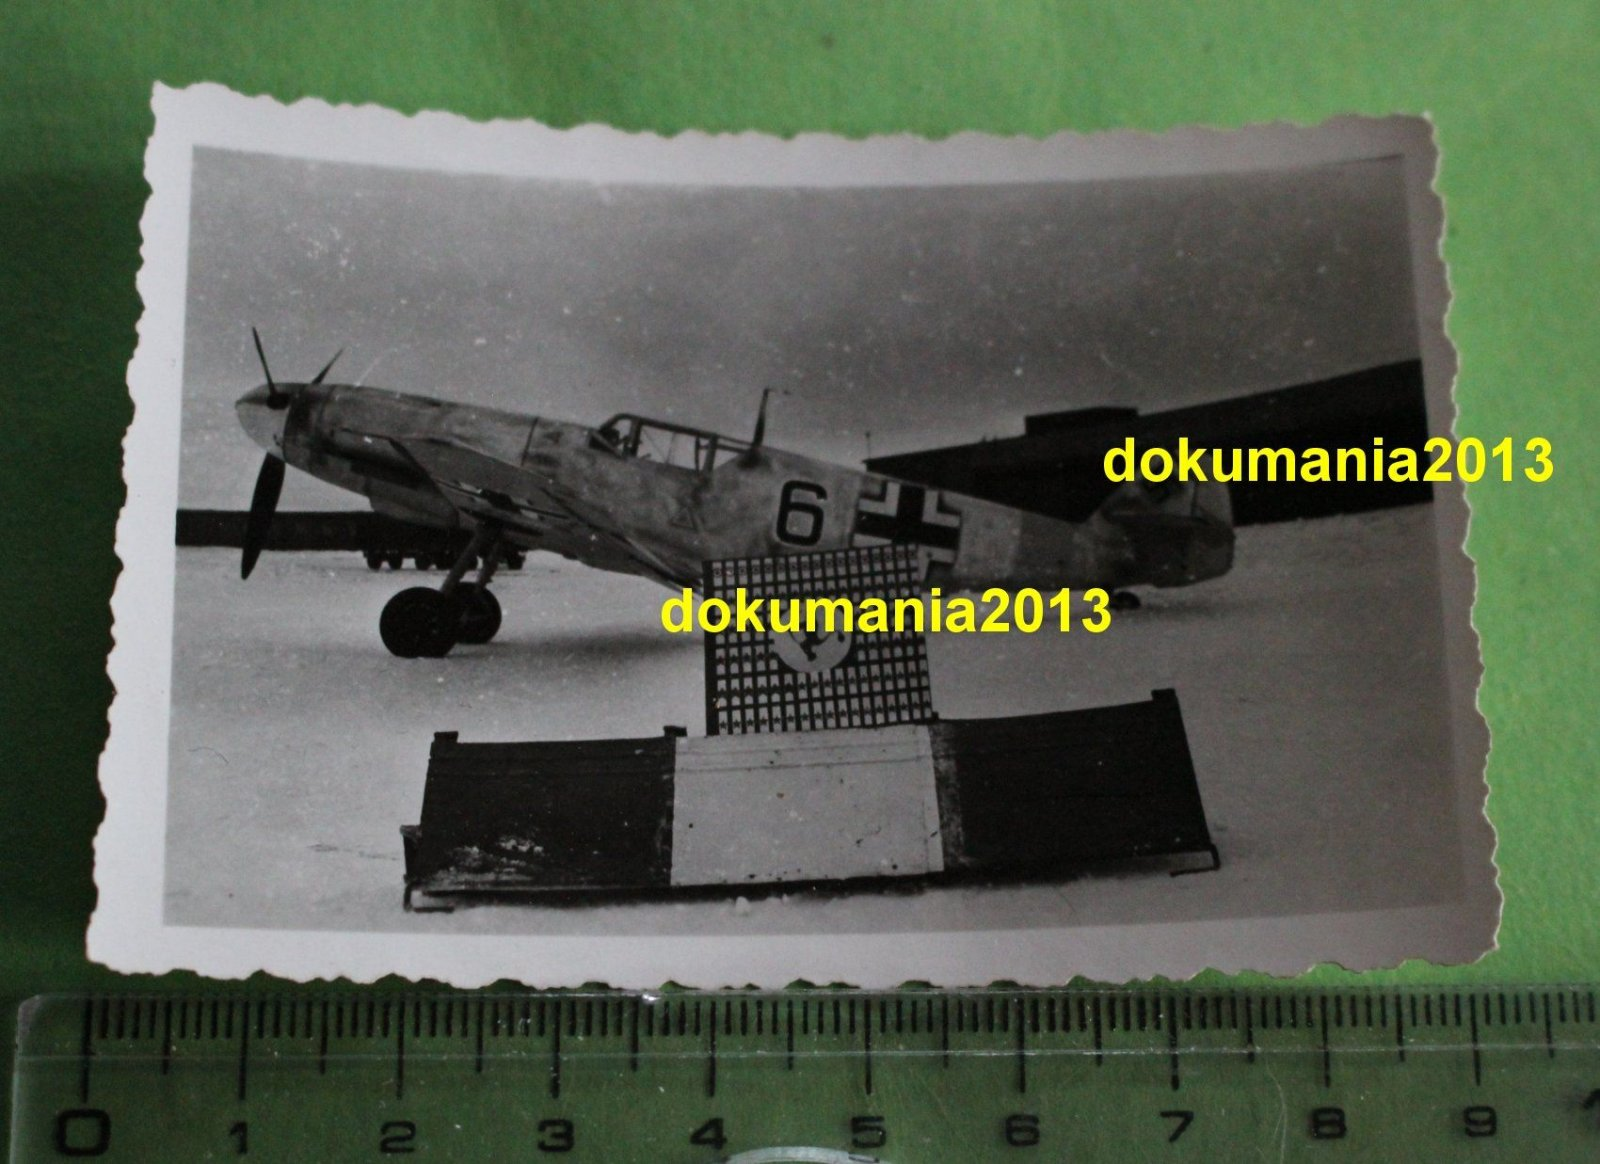 Bf 109F-2, 5.JG52, Black 6, USSR, Winter 1941-42 01.jpg